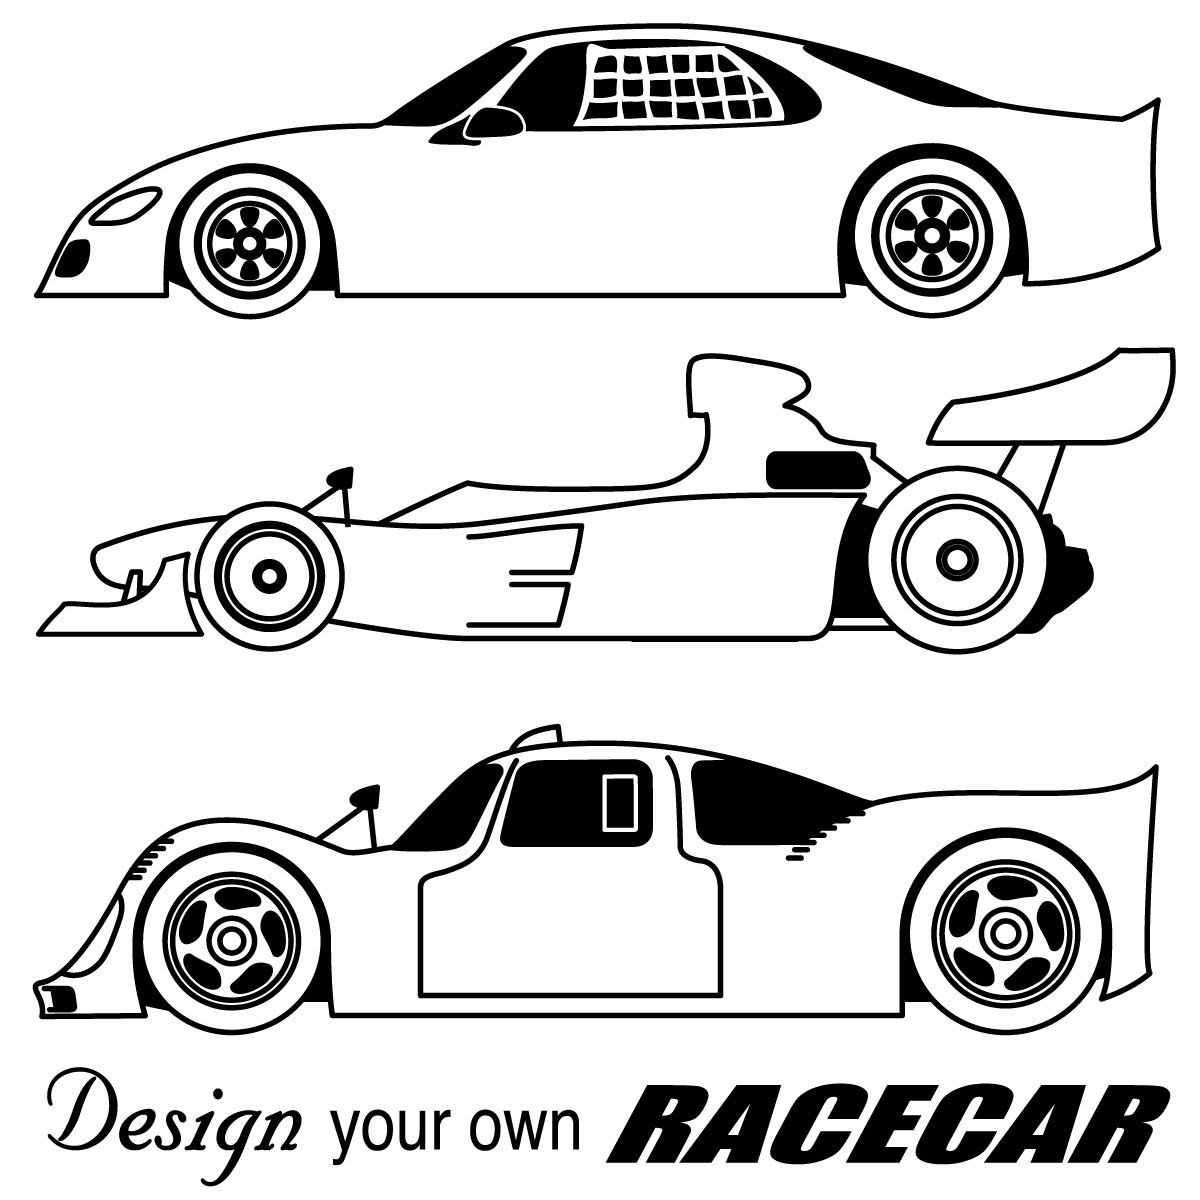 Racecar Race Car Coloring Pages Sports Coloring Pages Cars Coloring Pages